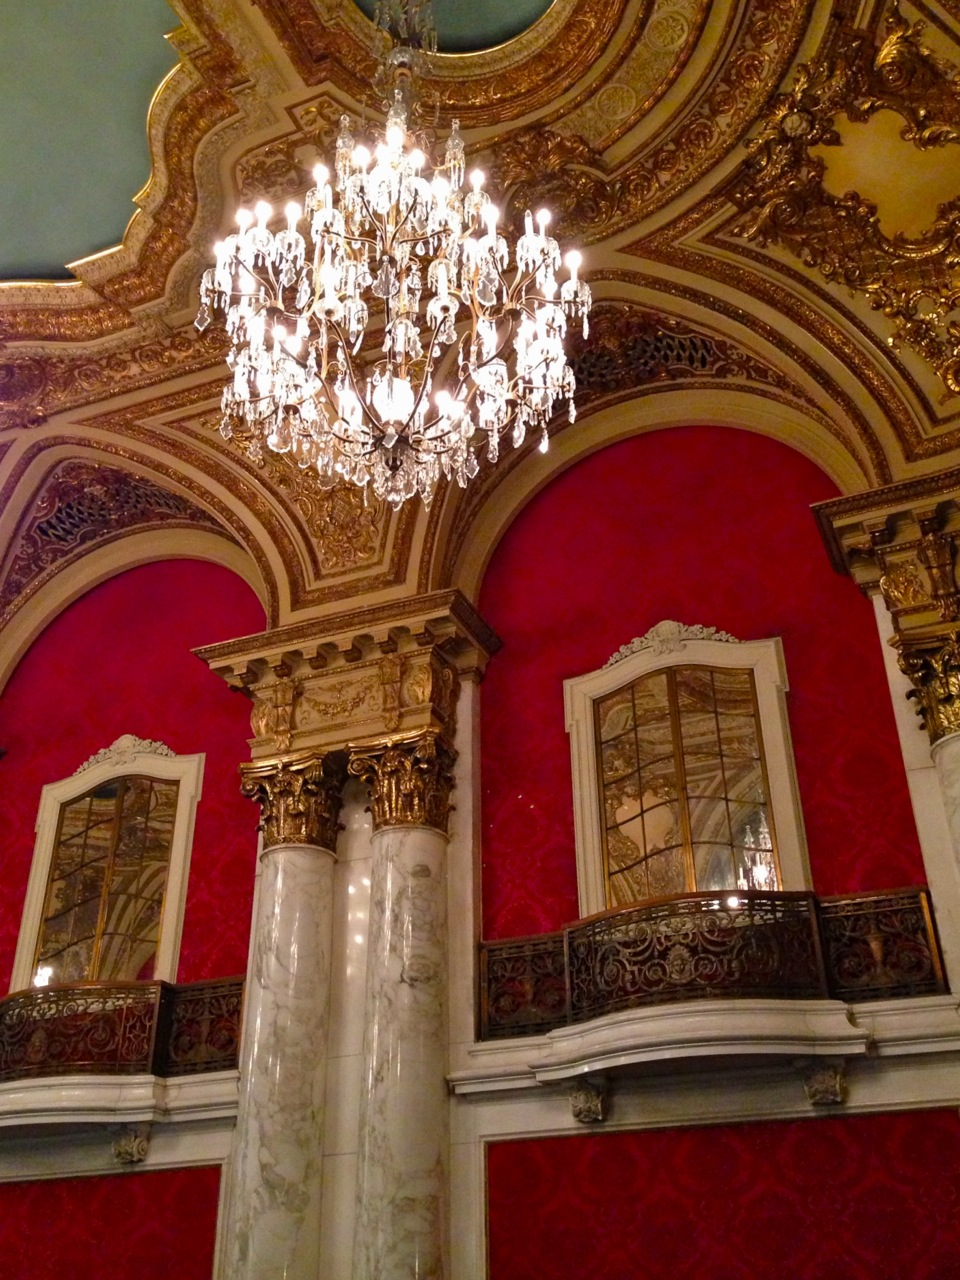 The interior of the Boston Opera House on Washington Street (Photo by Michelle Aldredge)